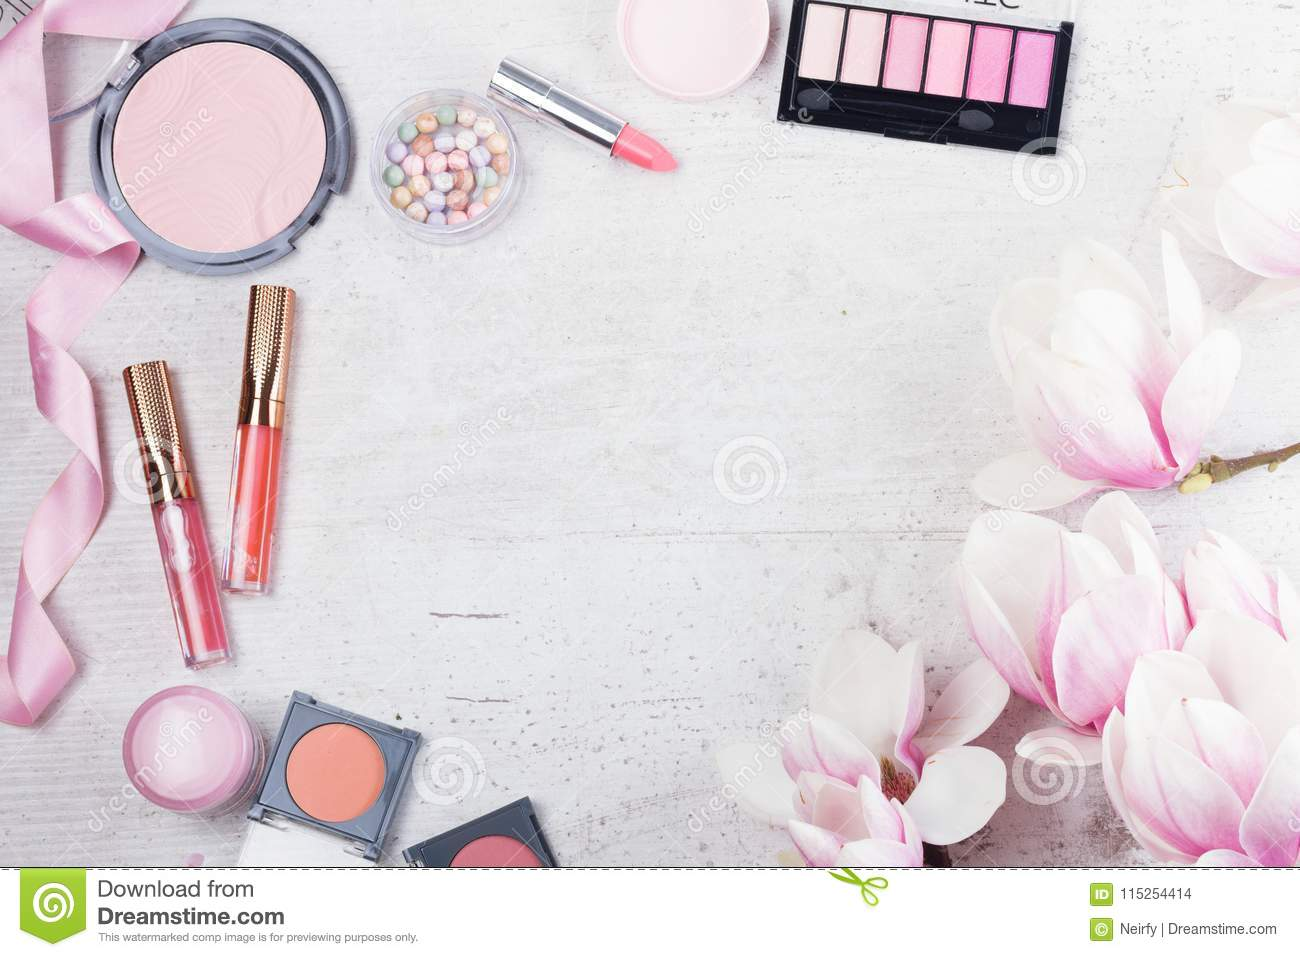 Makeup Beauty Products Stock Photo Image Of Design 115254414